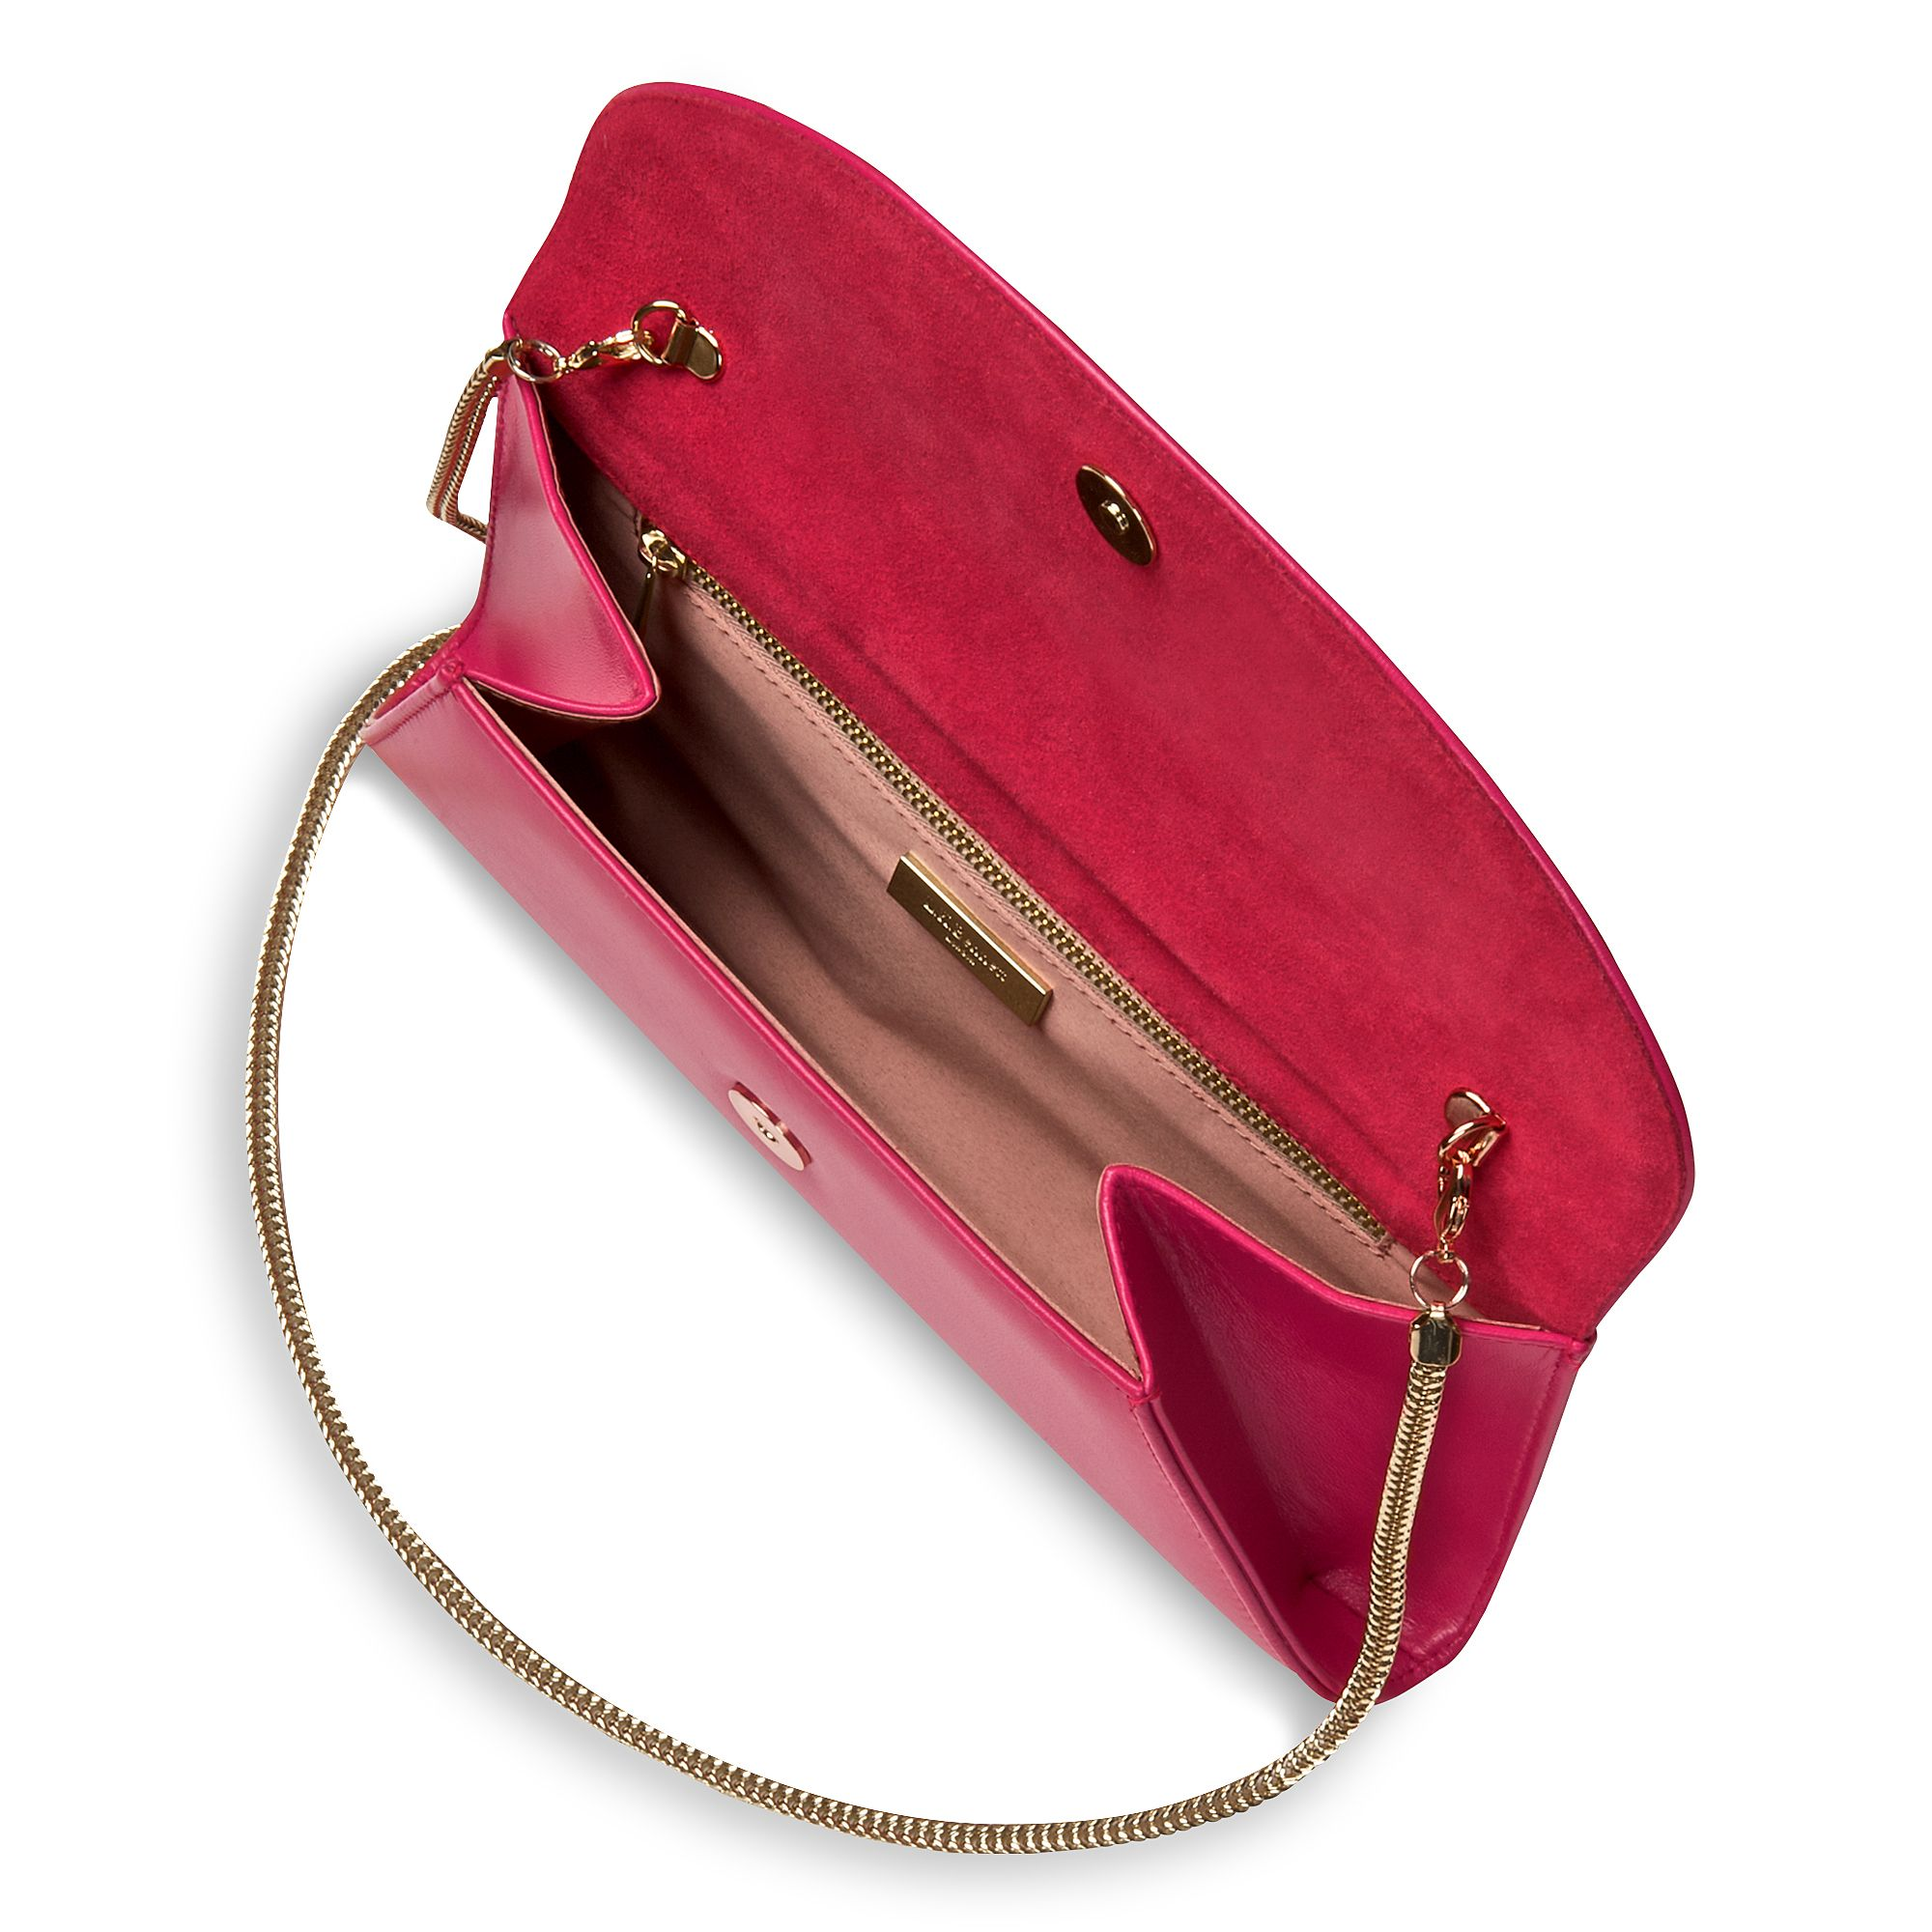 Flo curved envelope clutch bag